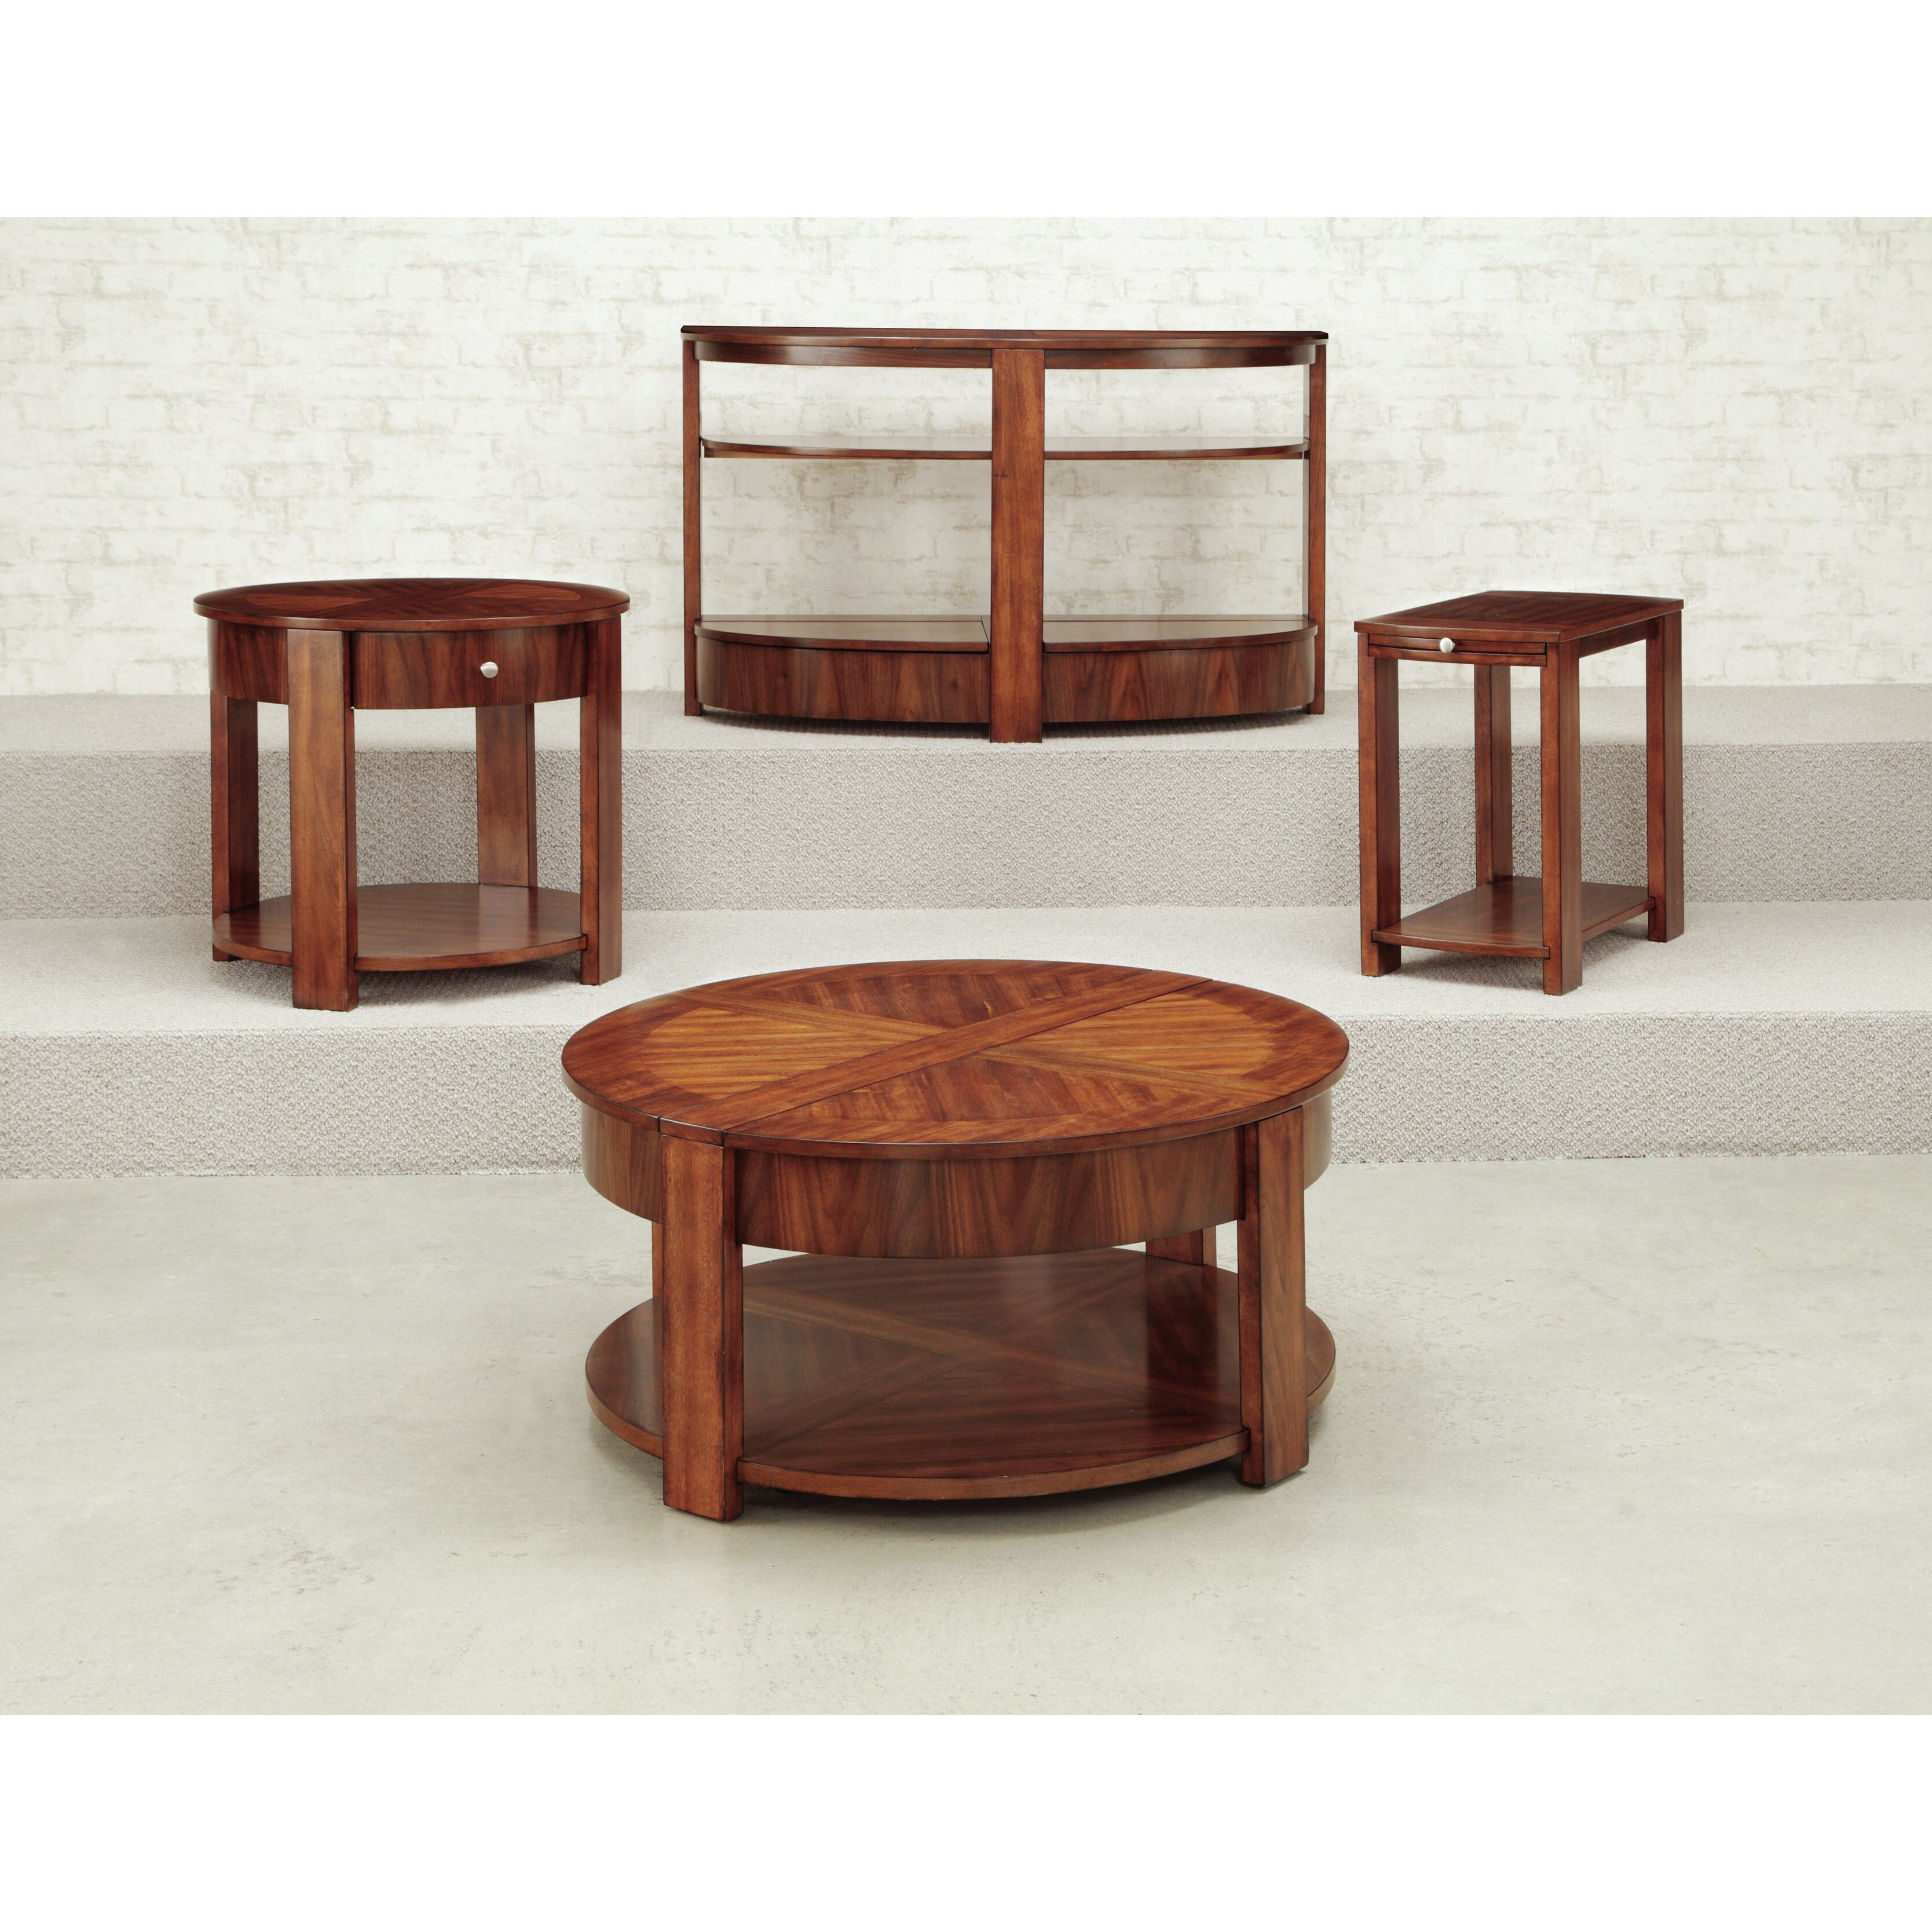 ... Maxims Furniture By Hammary Maxim End Table Reviews Wayfair ...